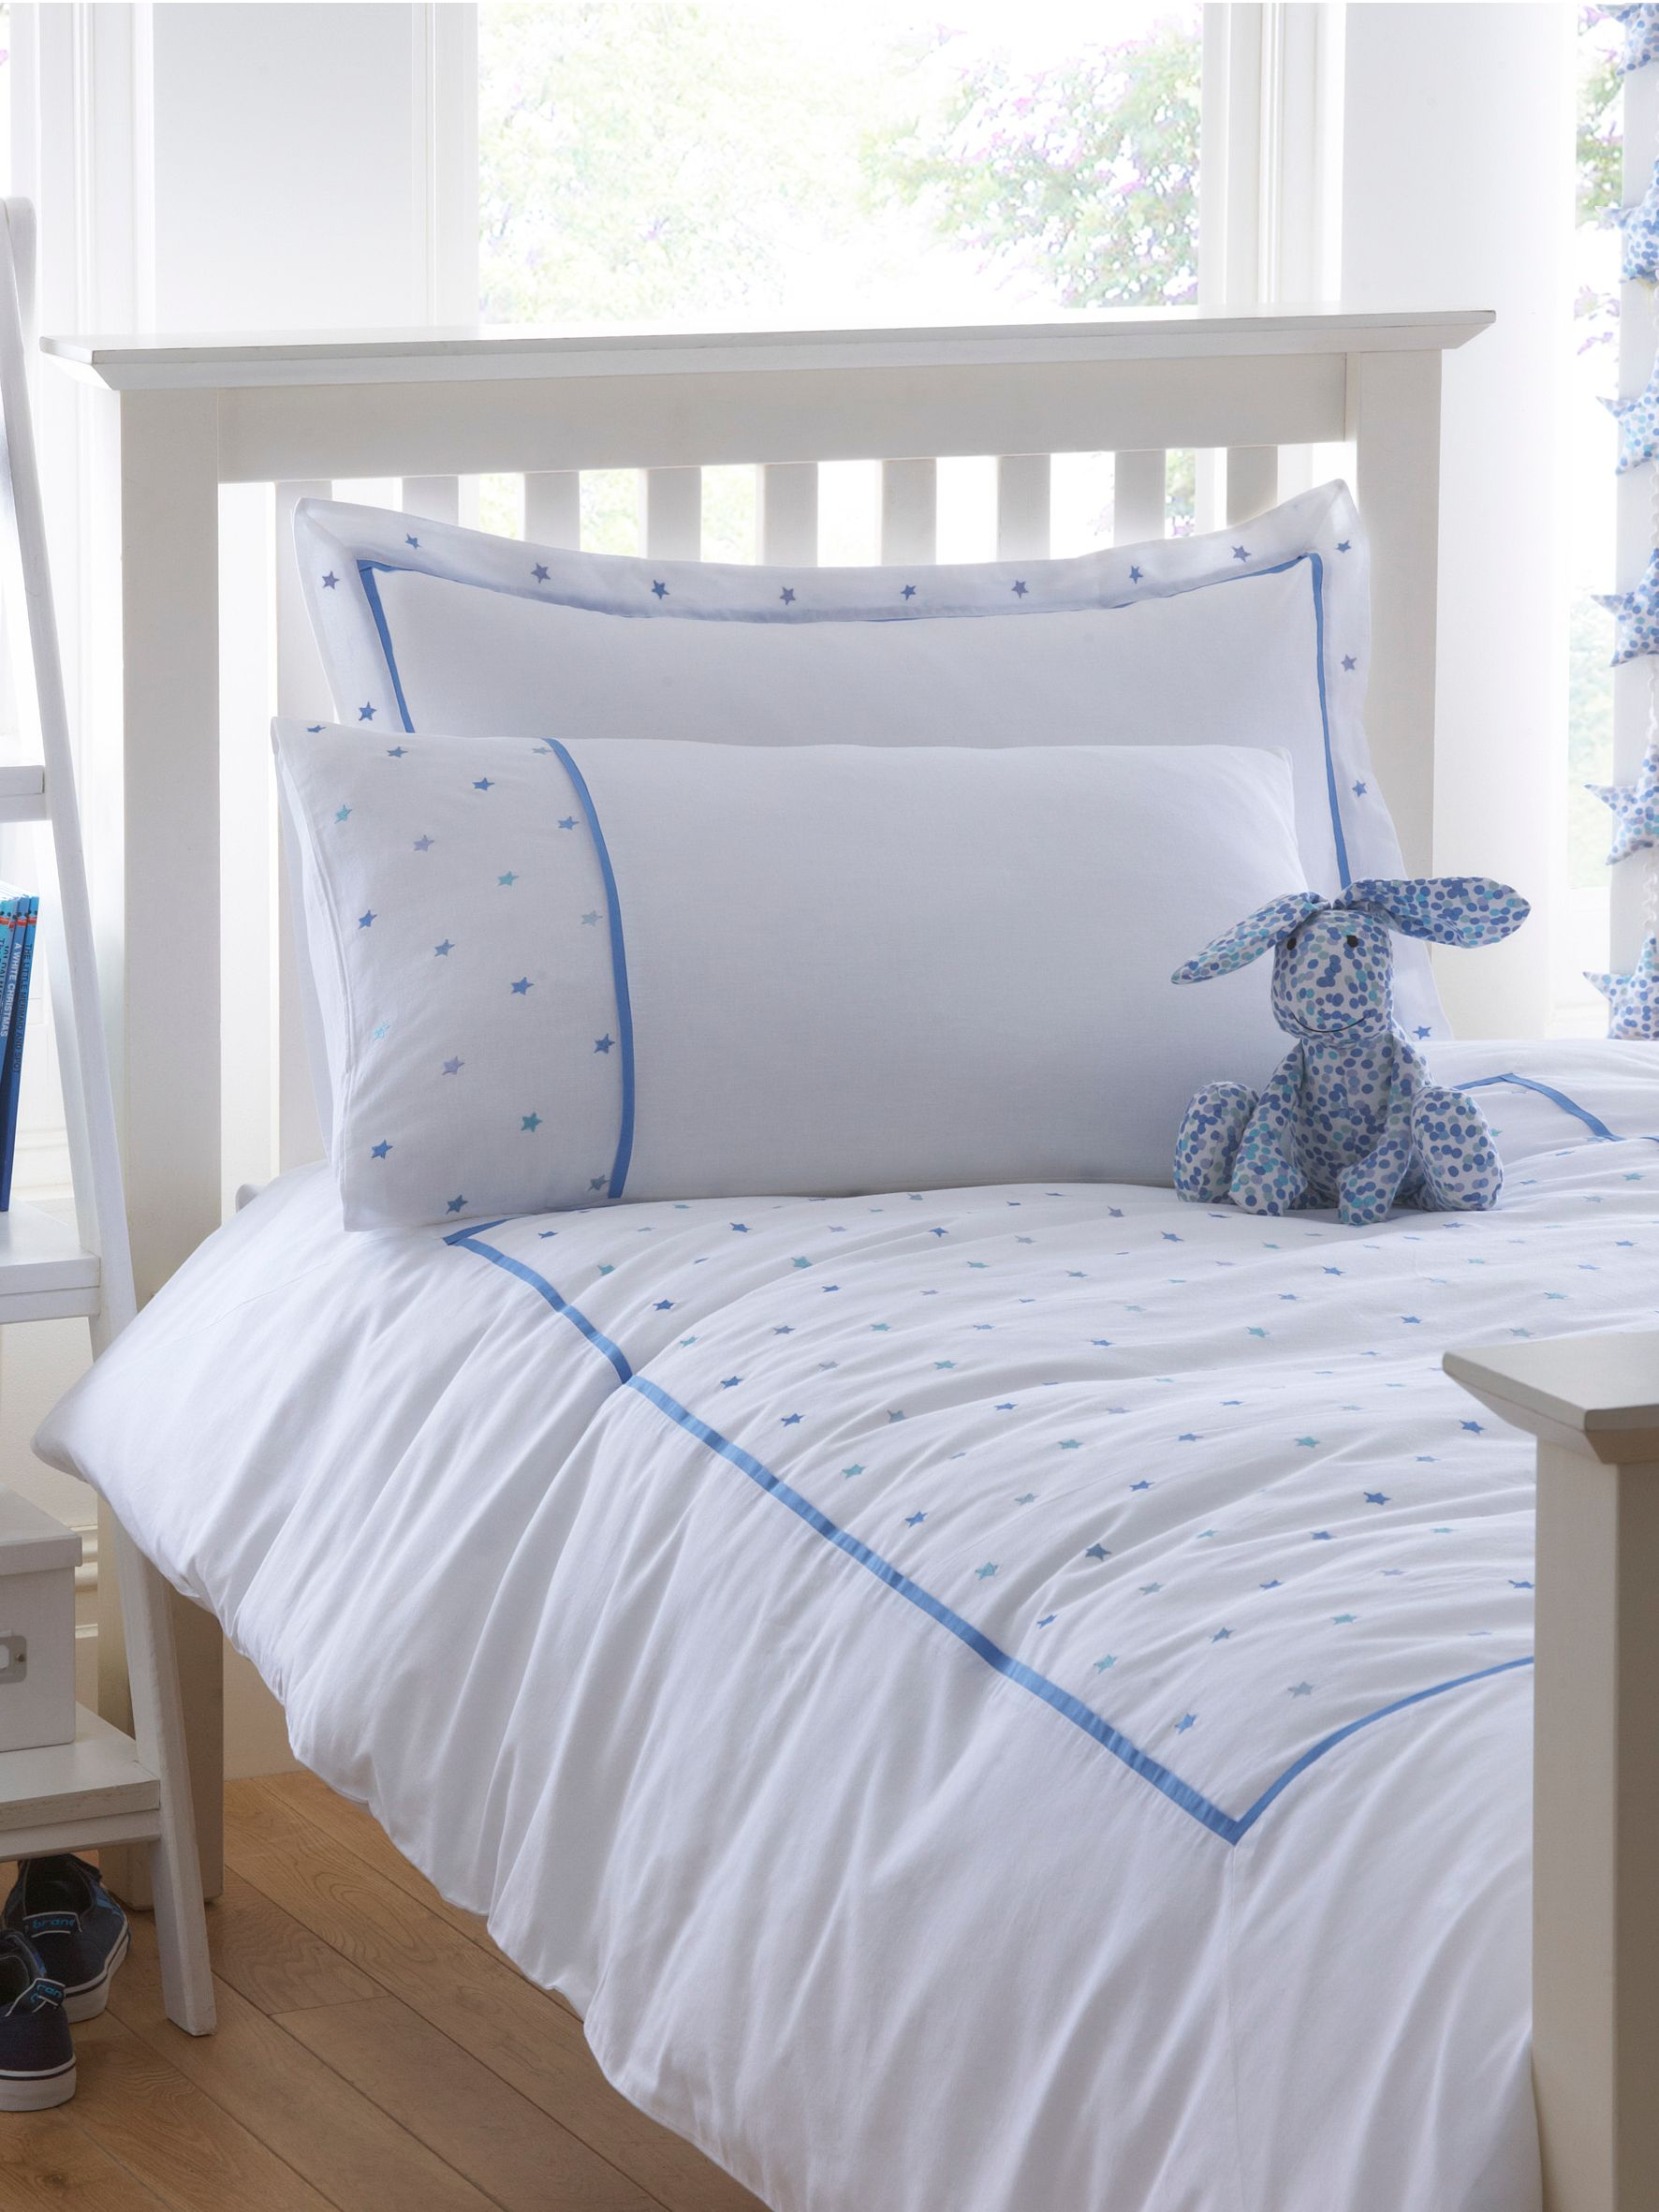 Little Star double duvet cover